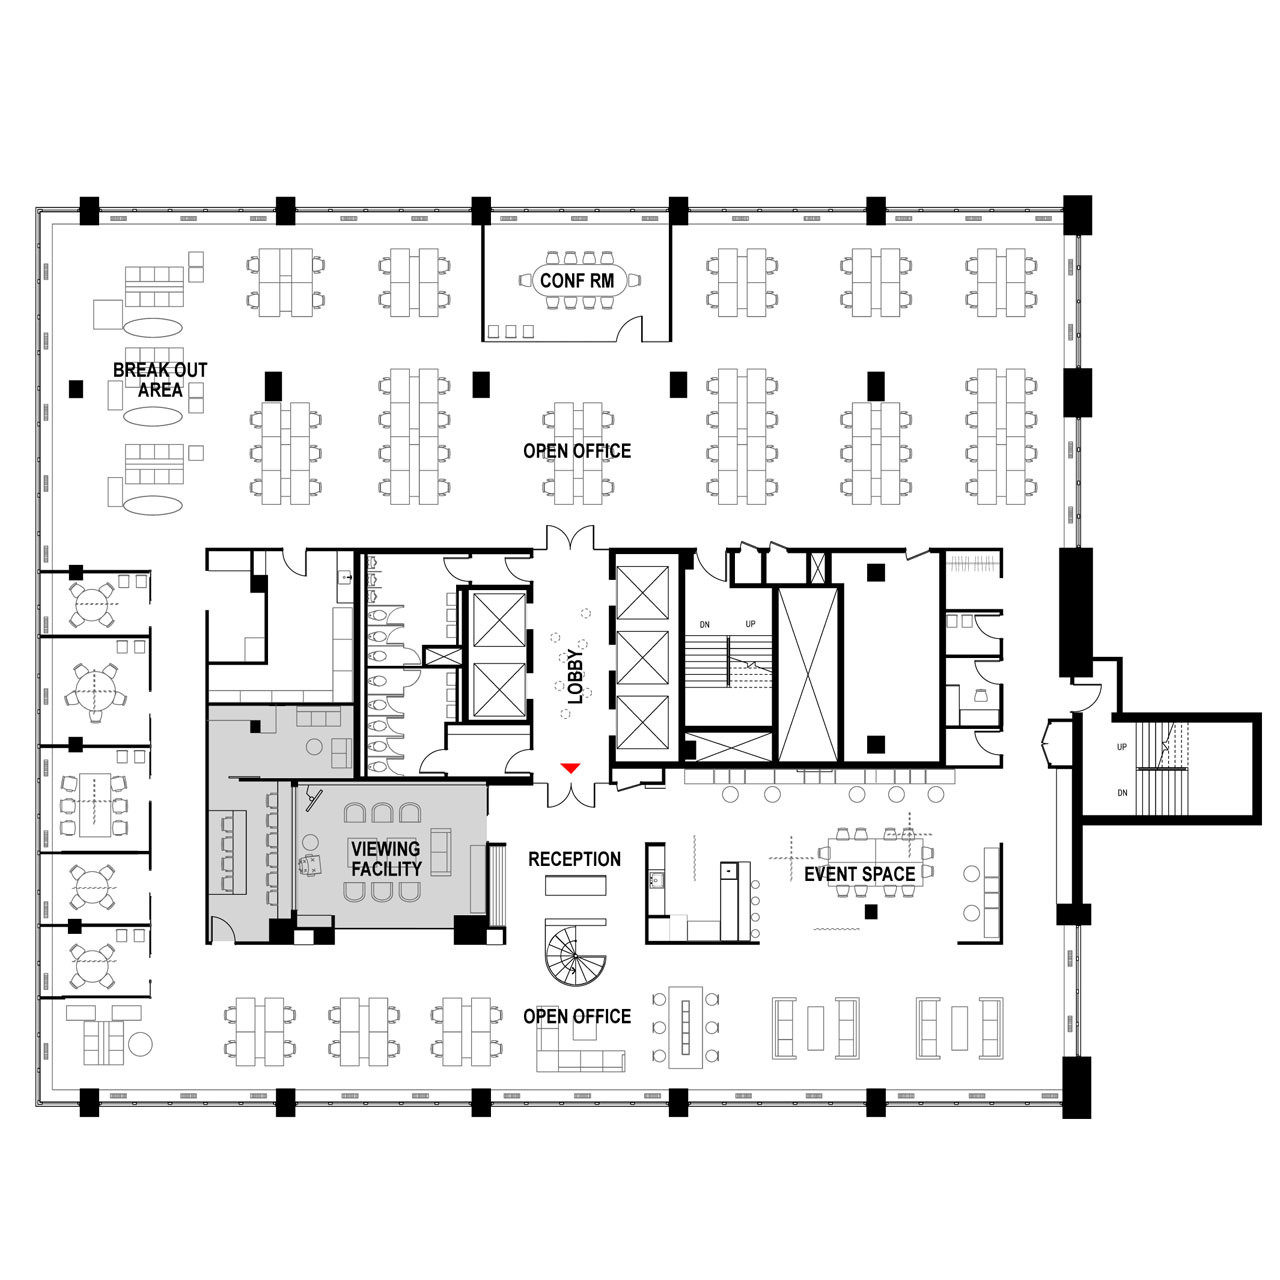 Office Layout Vastu Tips For Prosperity additionally 50137de928ba0d1507000411 Hall Partners Branding Research Agency Fabrica 718 Corey Yurkovich Plan in addition Restaurant Floor Plans Drafting Software furthermore Exhibitions likewise 3115 Ralston Avenue Hillsborough. on hall floor plan